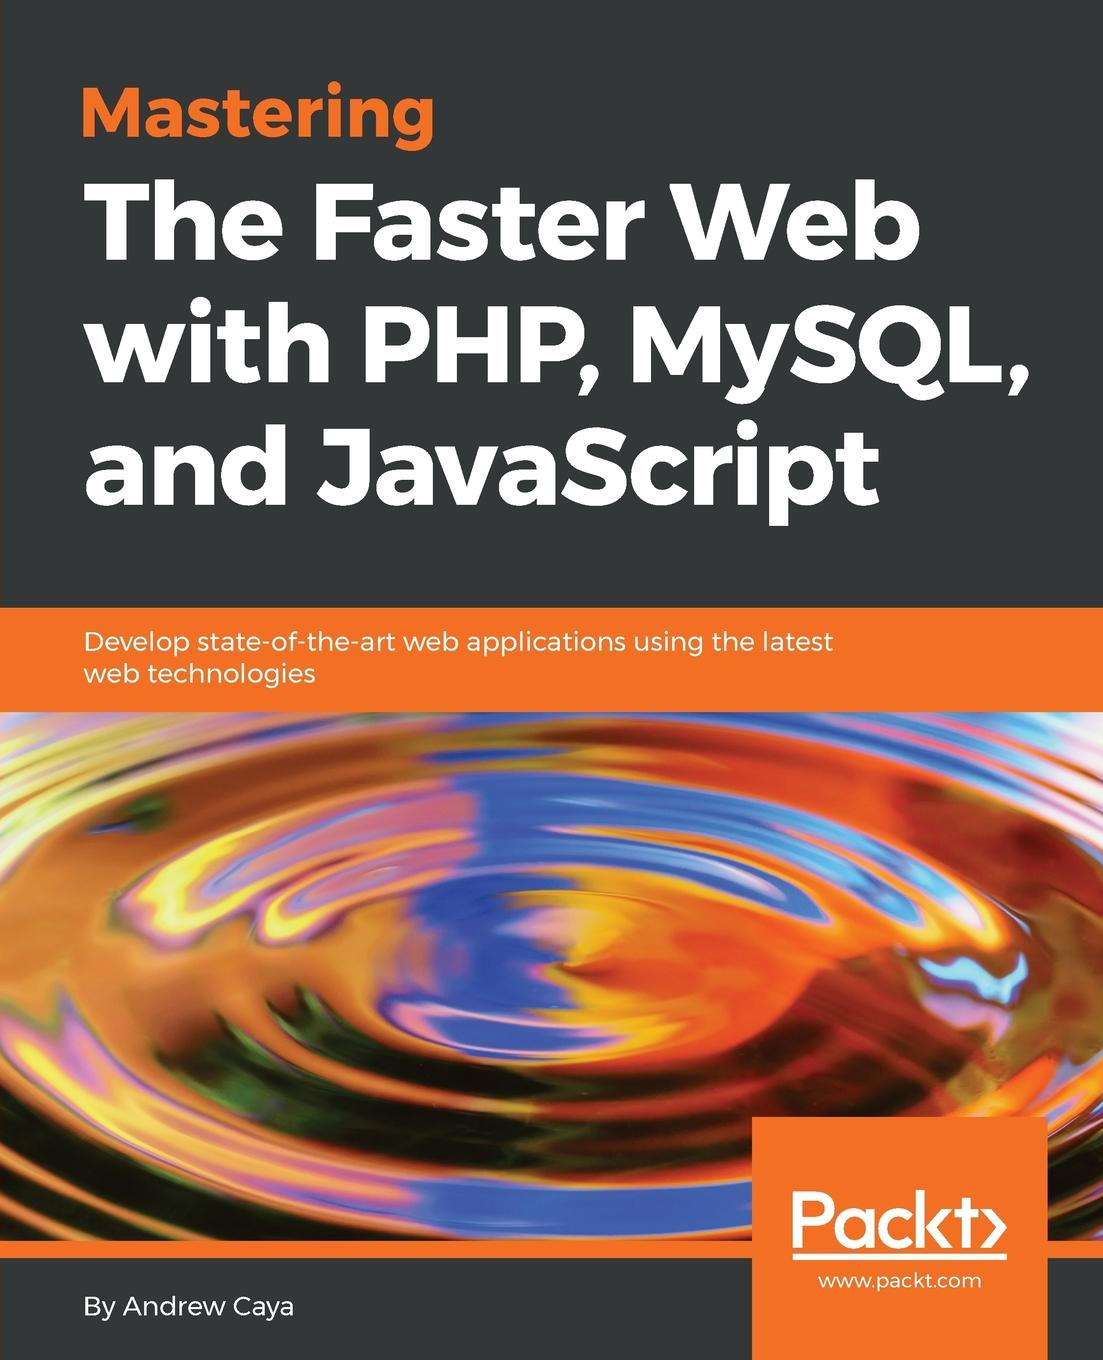 дамашке г php и mysql Andrew Caya Mastering The Faster Web with PHP, MySQL, and JavaScript